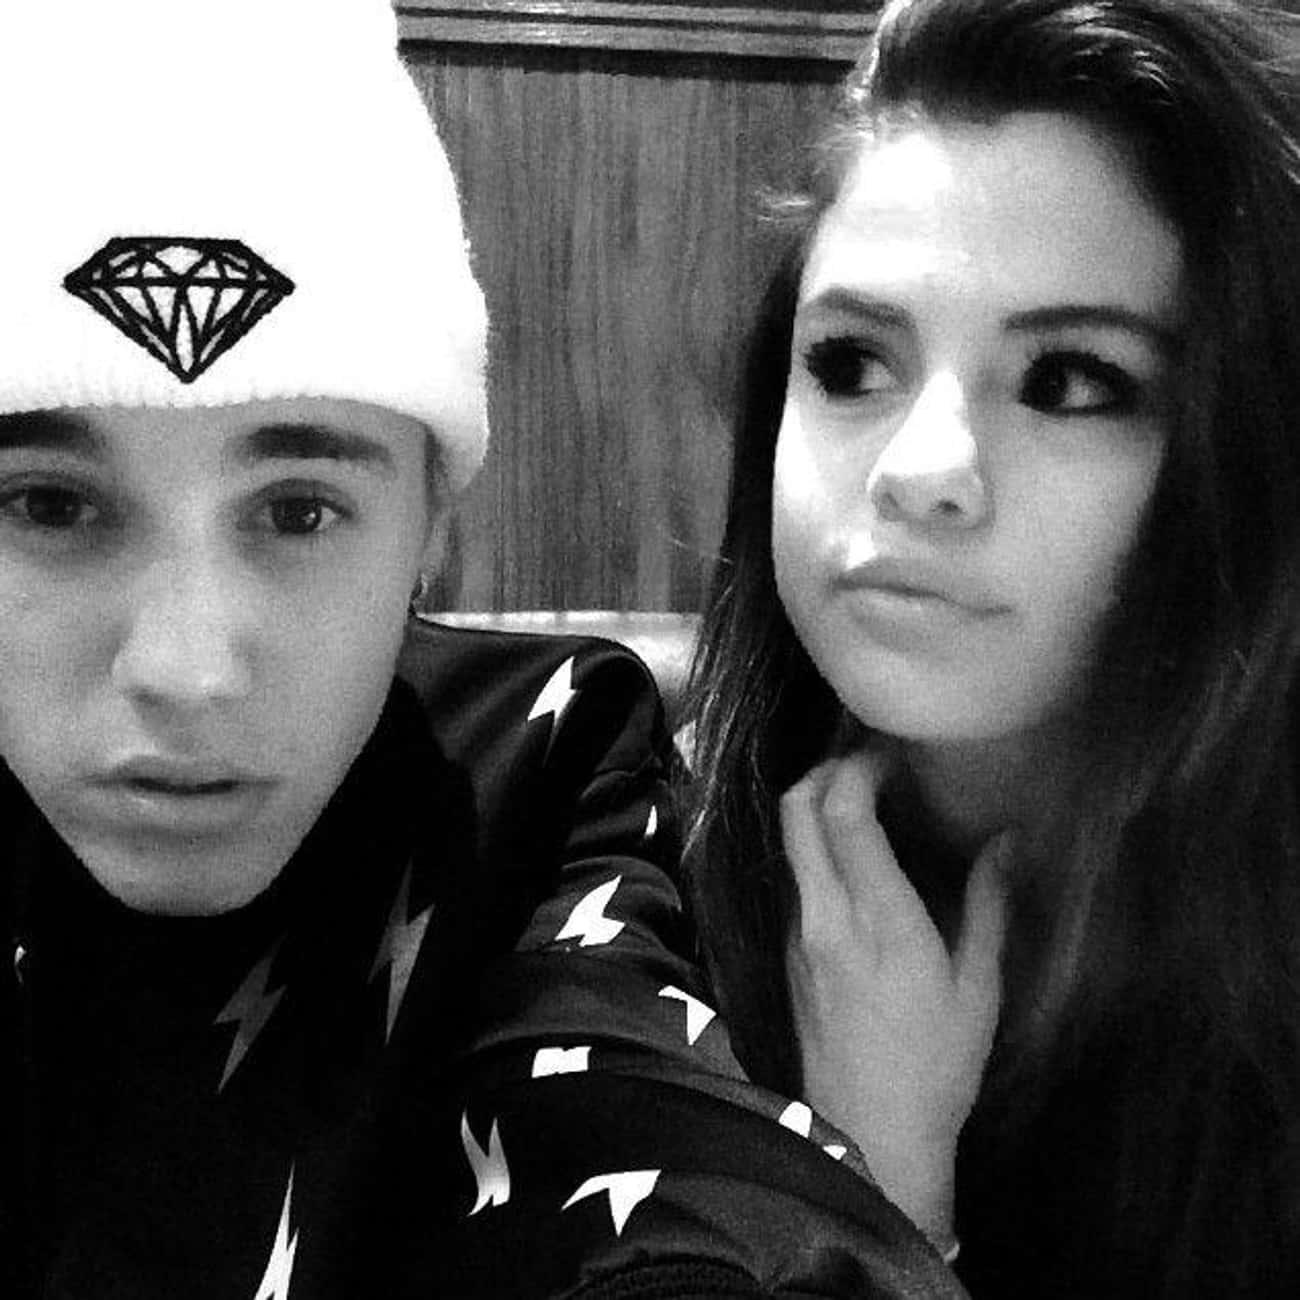 Selena Gomez is listed (or ranked) 3 on the list Justin Bieber Loves And Hookups